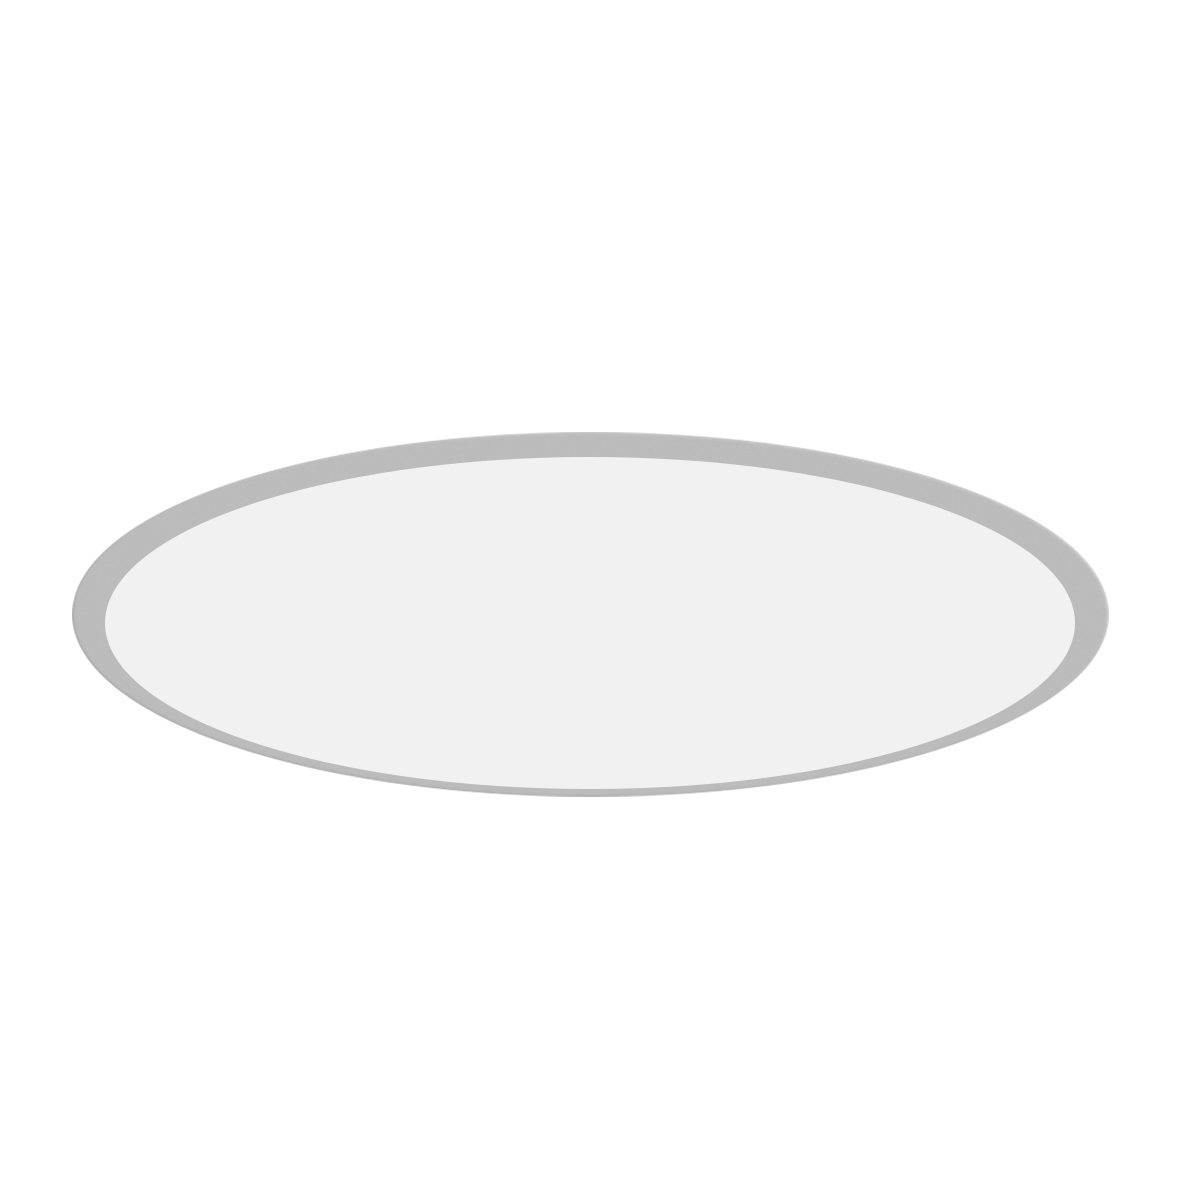 ROON H10 RECESSED